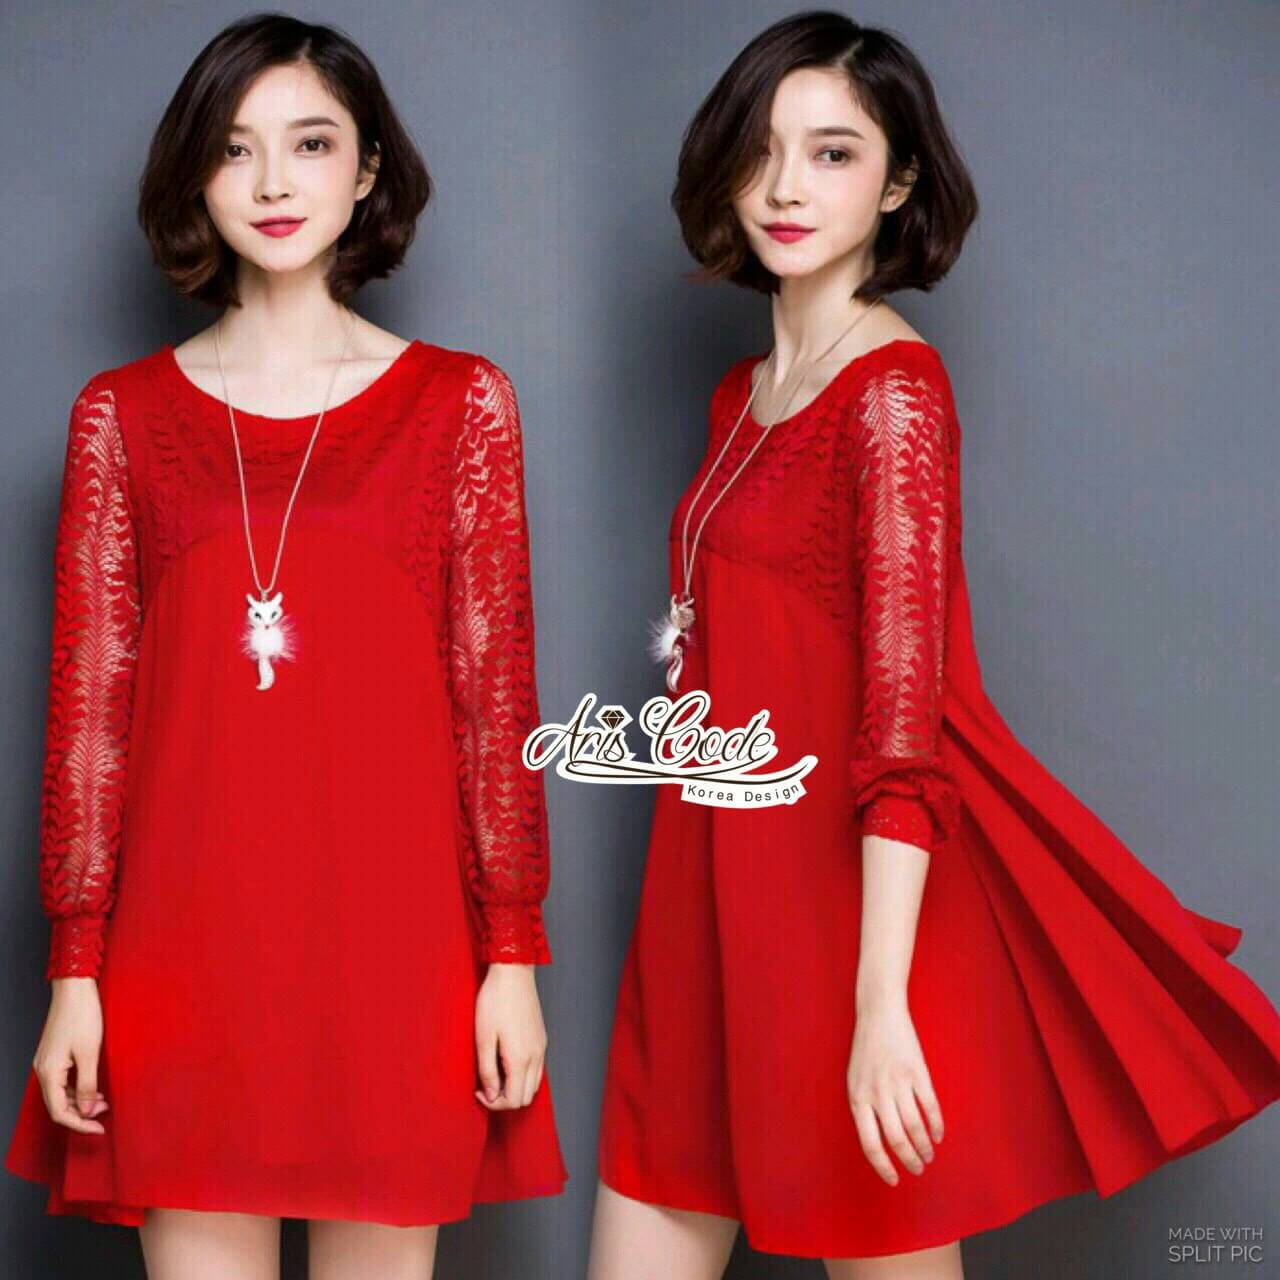 Dress shirt chiffon lace long sleeve bright red by Aris Code A249-69C03